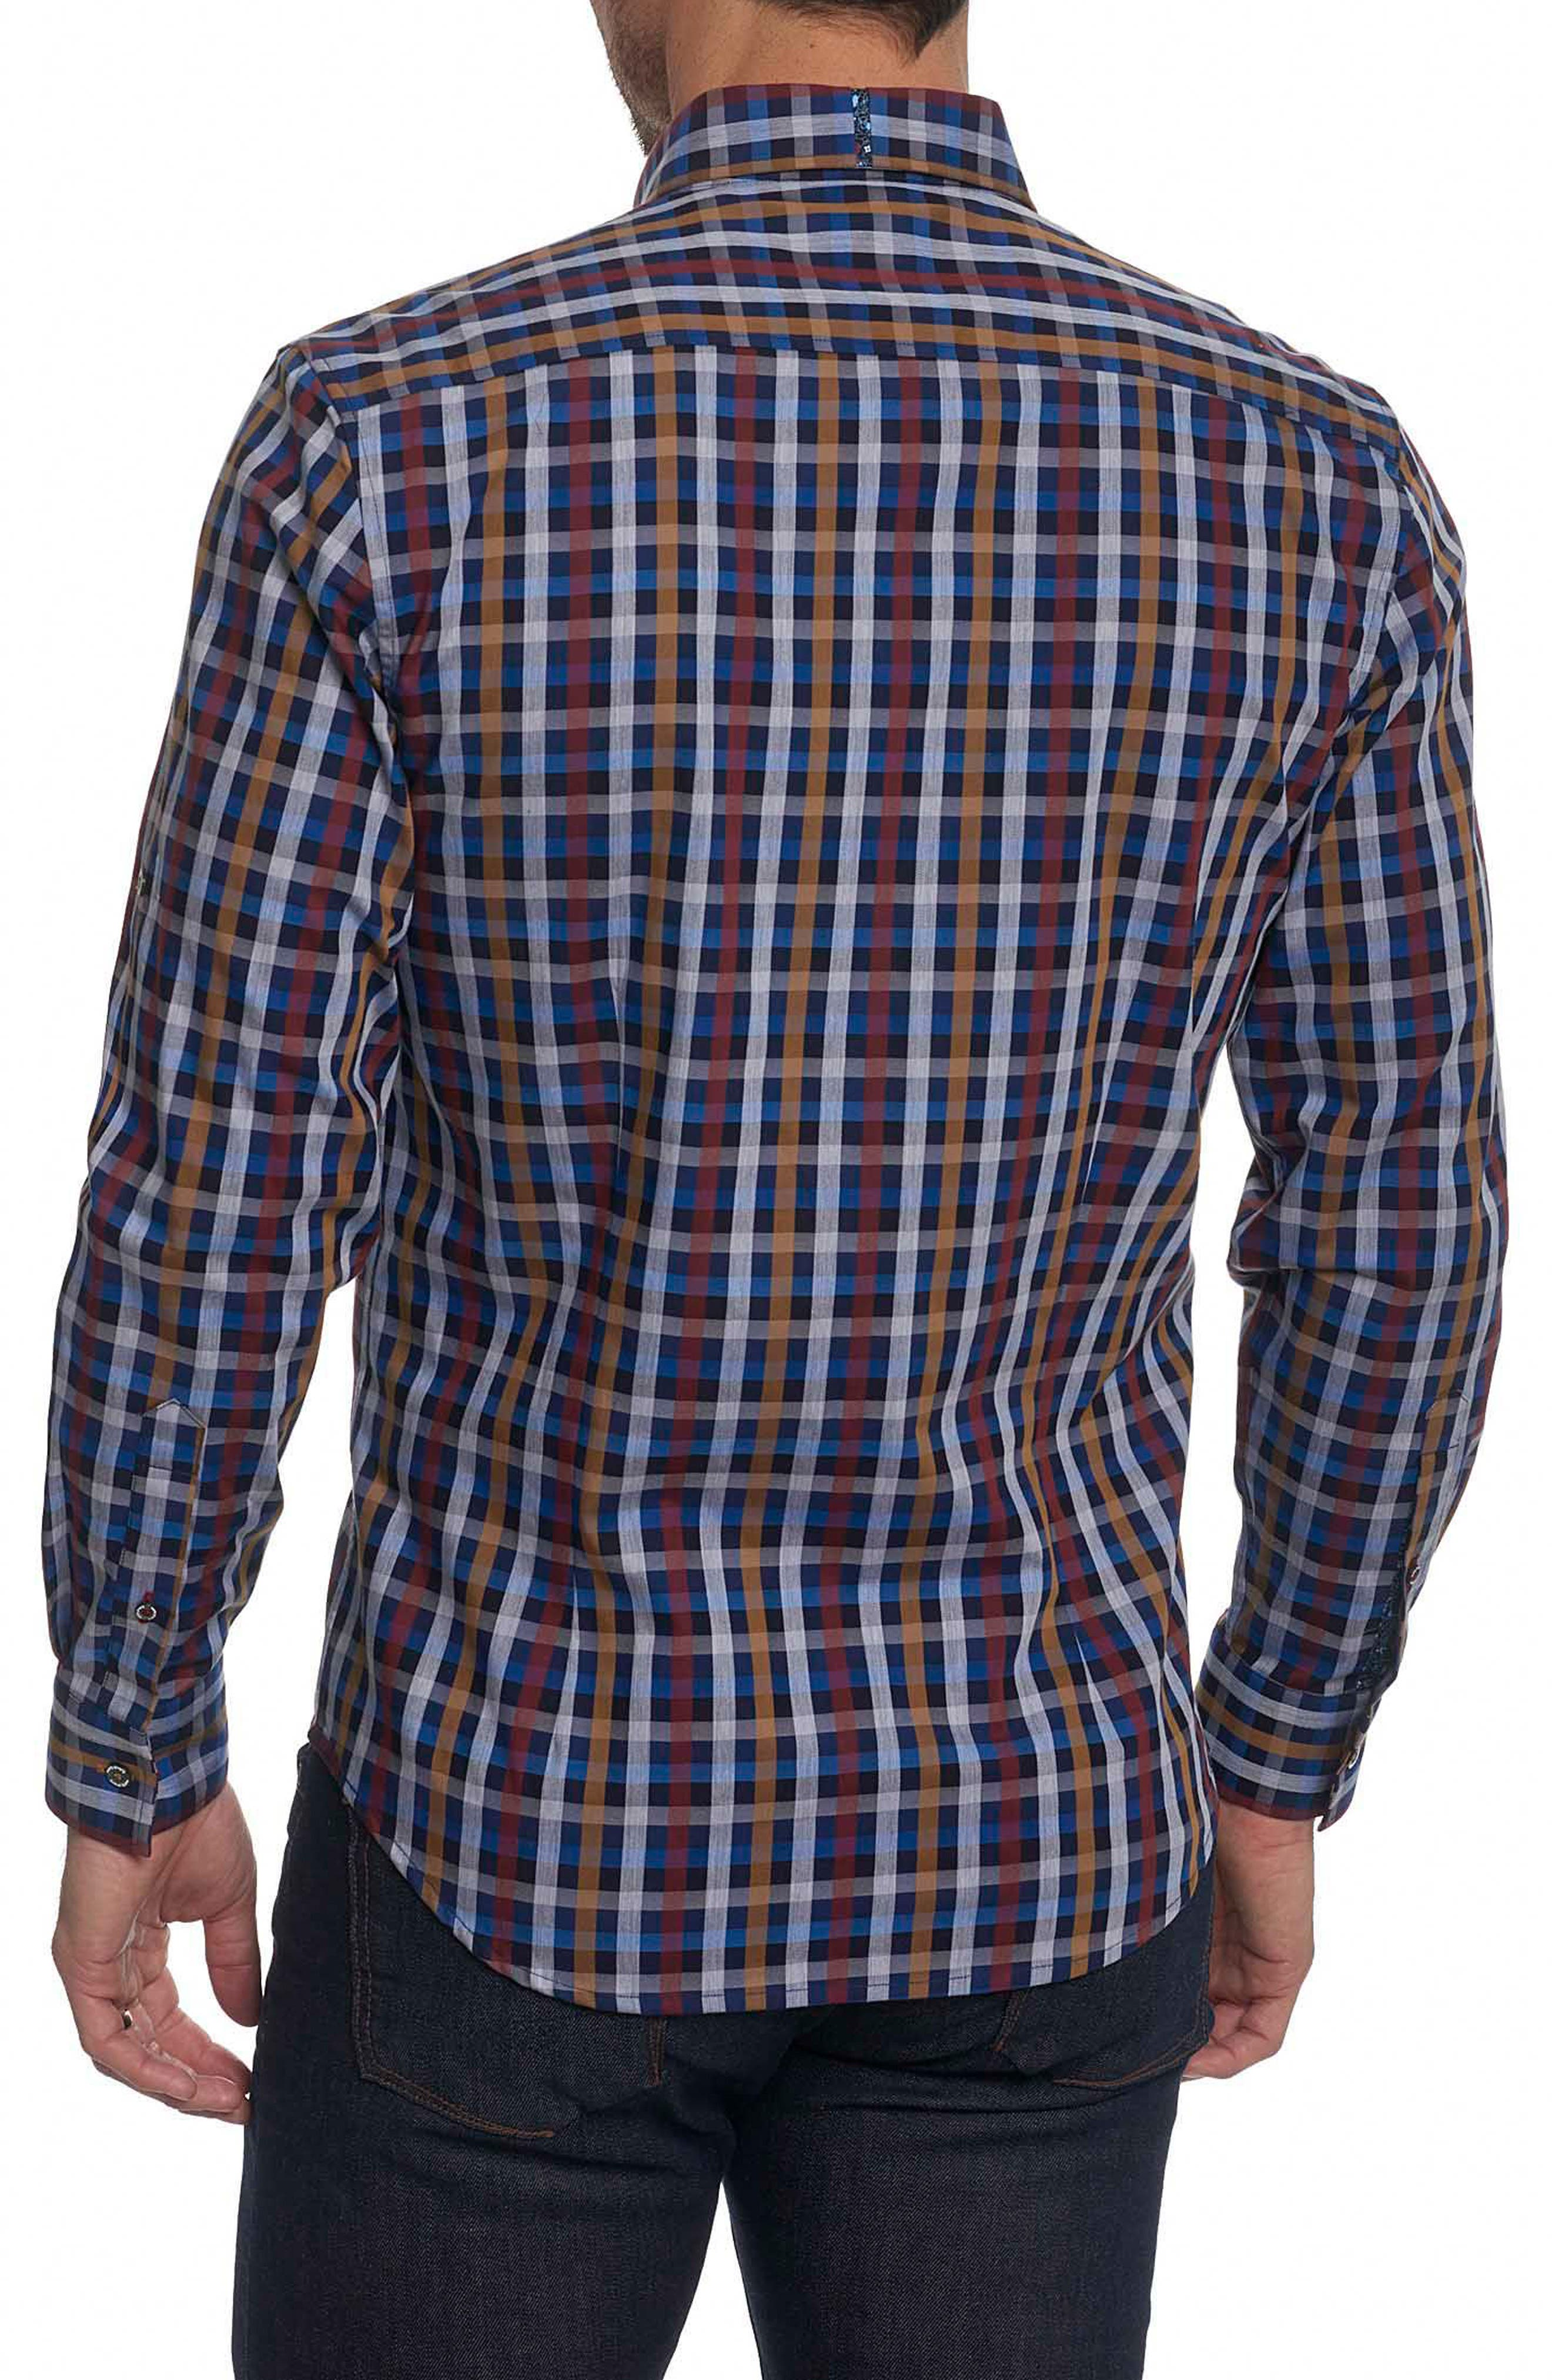 Carsons Tailored Fit Check Sport Shirt,                             Alternate thumbnail 2, color,                             Blue